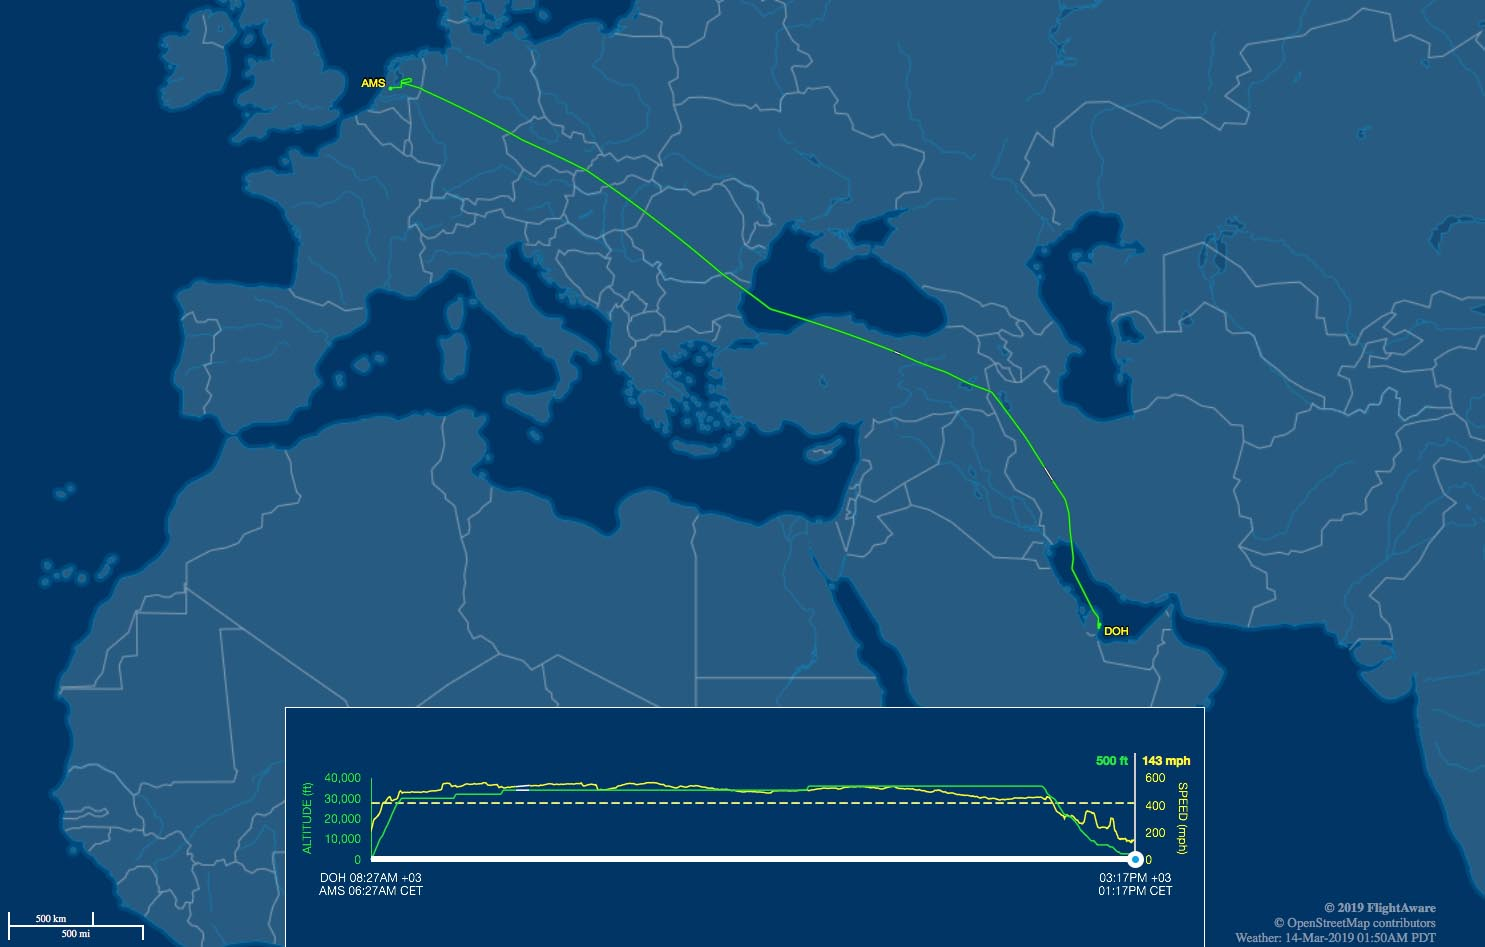 Doha to Amsterdam flight track